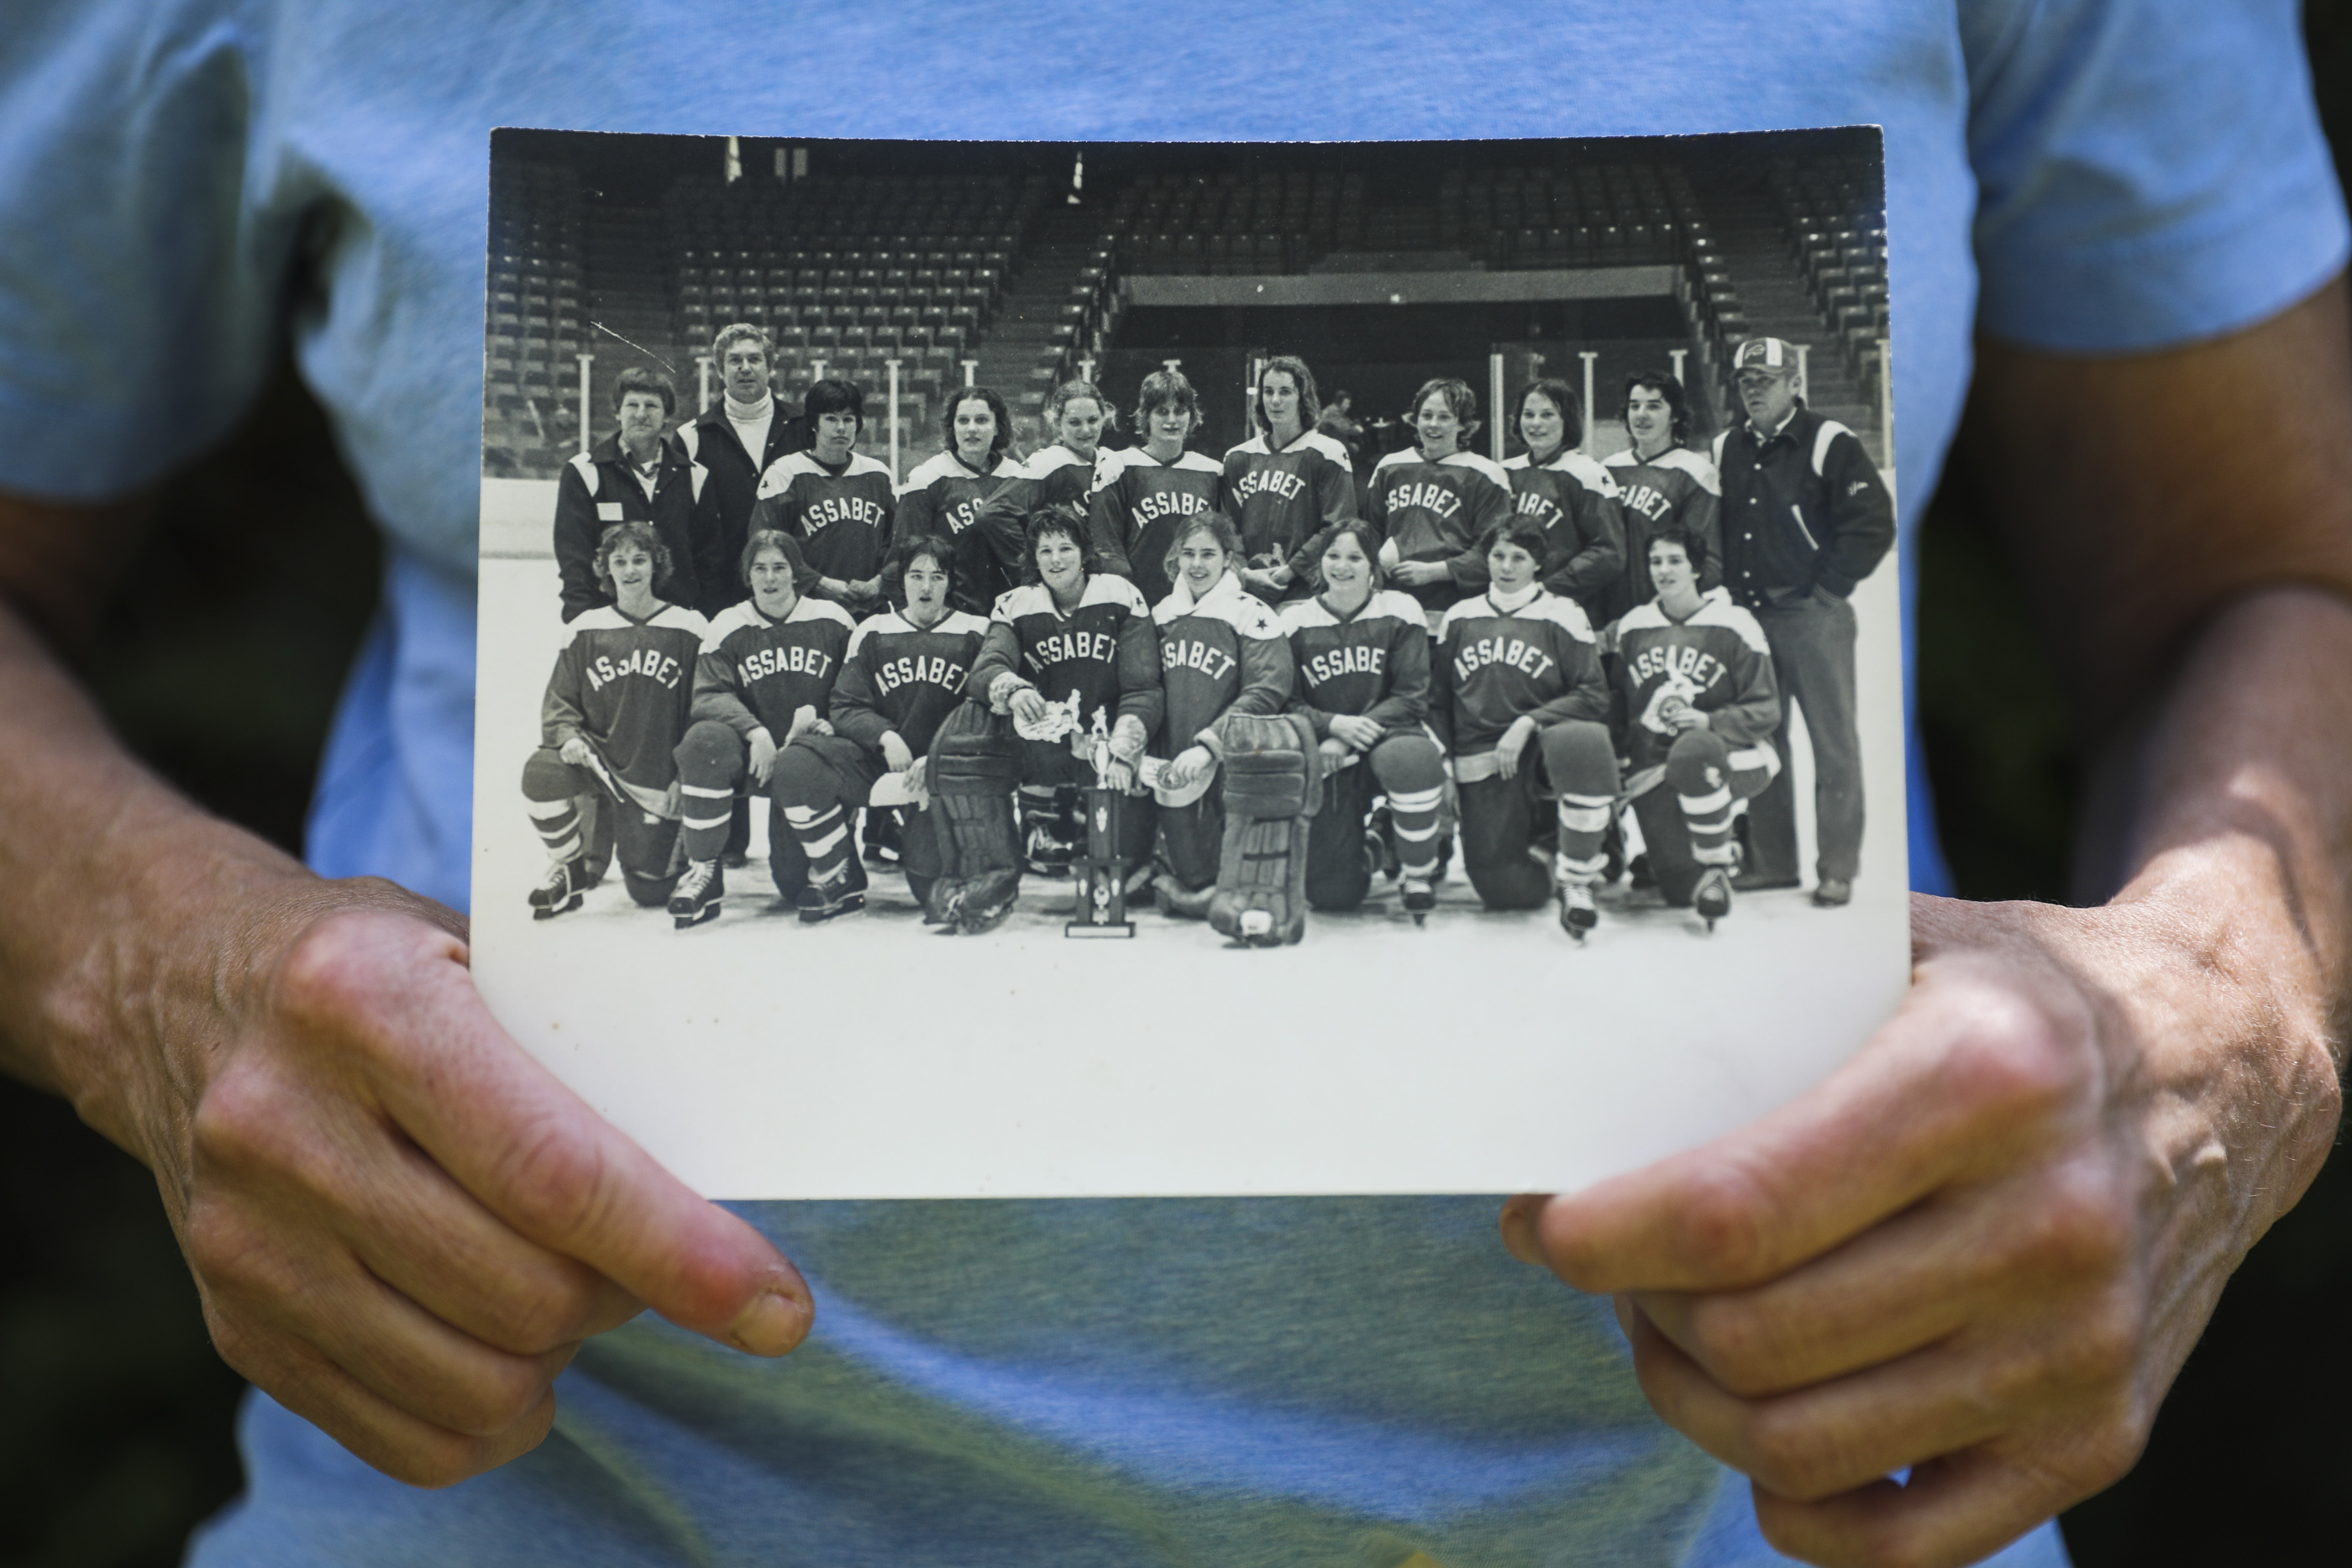 Estey Ticknor holds a photo of the Assabet Valley team. Carl Gray is standing second from left. Ticknor was part of the elite youth hockey program that has helped hundreds of girls receive college scholarship offers. Some have even won Olympic medals.